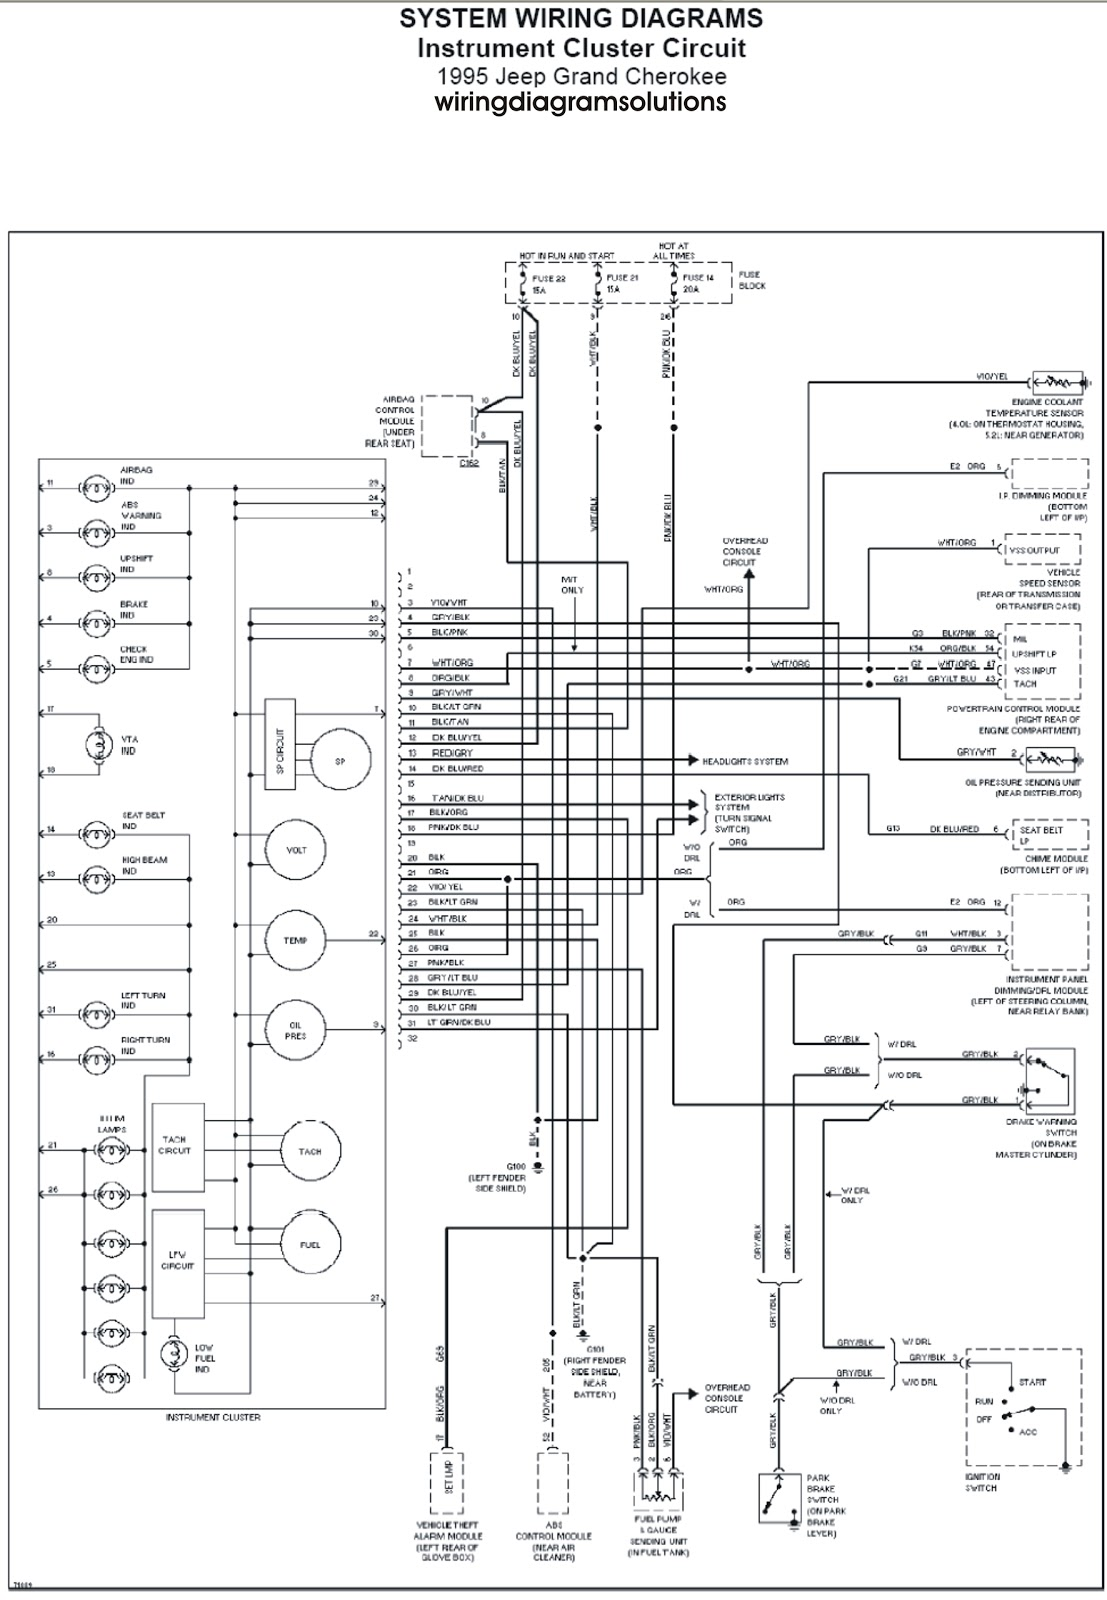 Download [DIAGRAM] 94 Jeep Cherokee Radio Wiring Diagram FULL Version HD  Quality Wiring Diagram - OKCWEBDESIGNER.KINGGO.FRokcwebdesigner kinggo fr